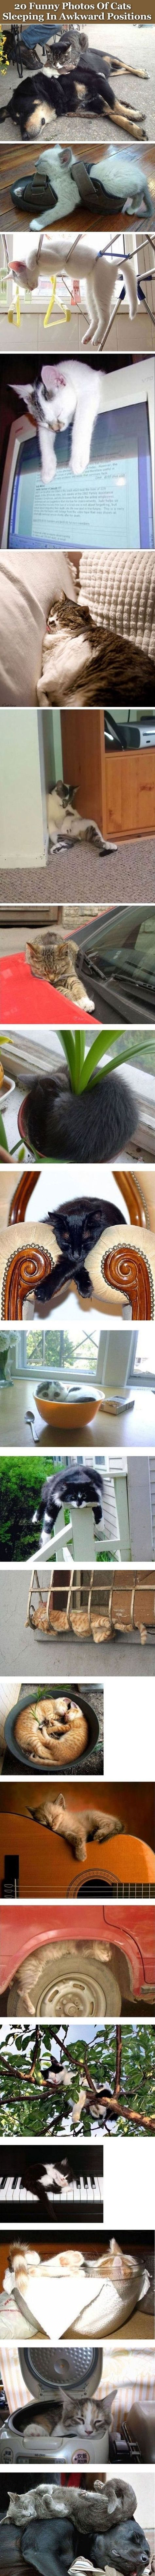 20 Funny Photos Of Cats Sleeping In Awkward Positions Cute Animals Cat Cats Adorable Animal Kittens Pets Kitten Fu Animals Funny Cats Cat Sleeping Cute Animals